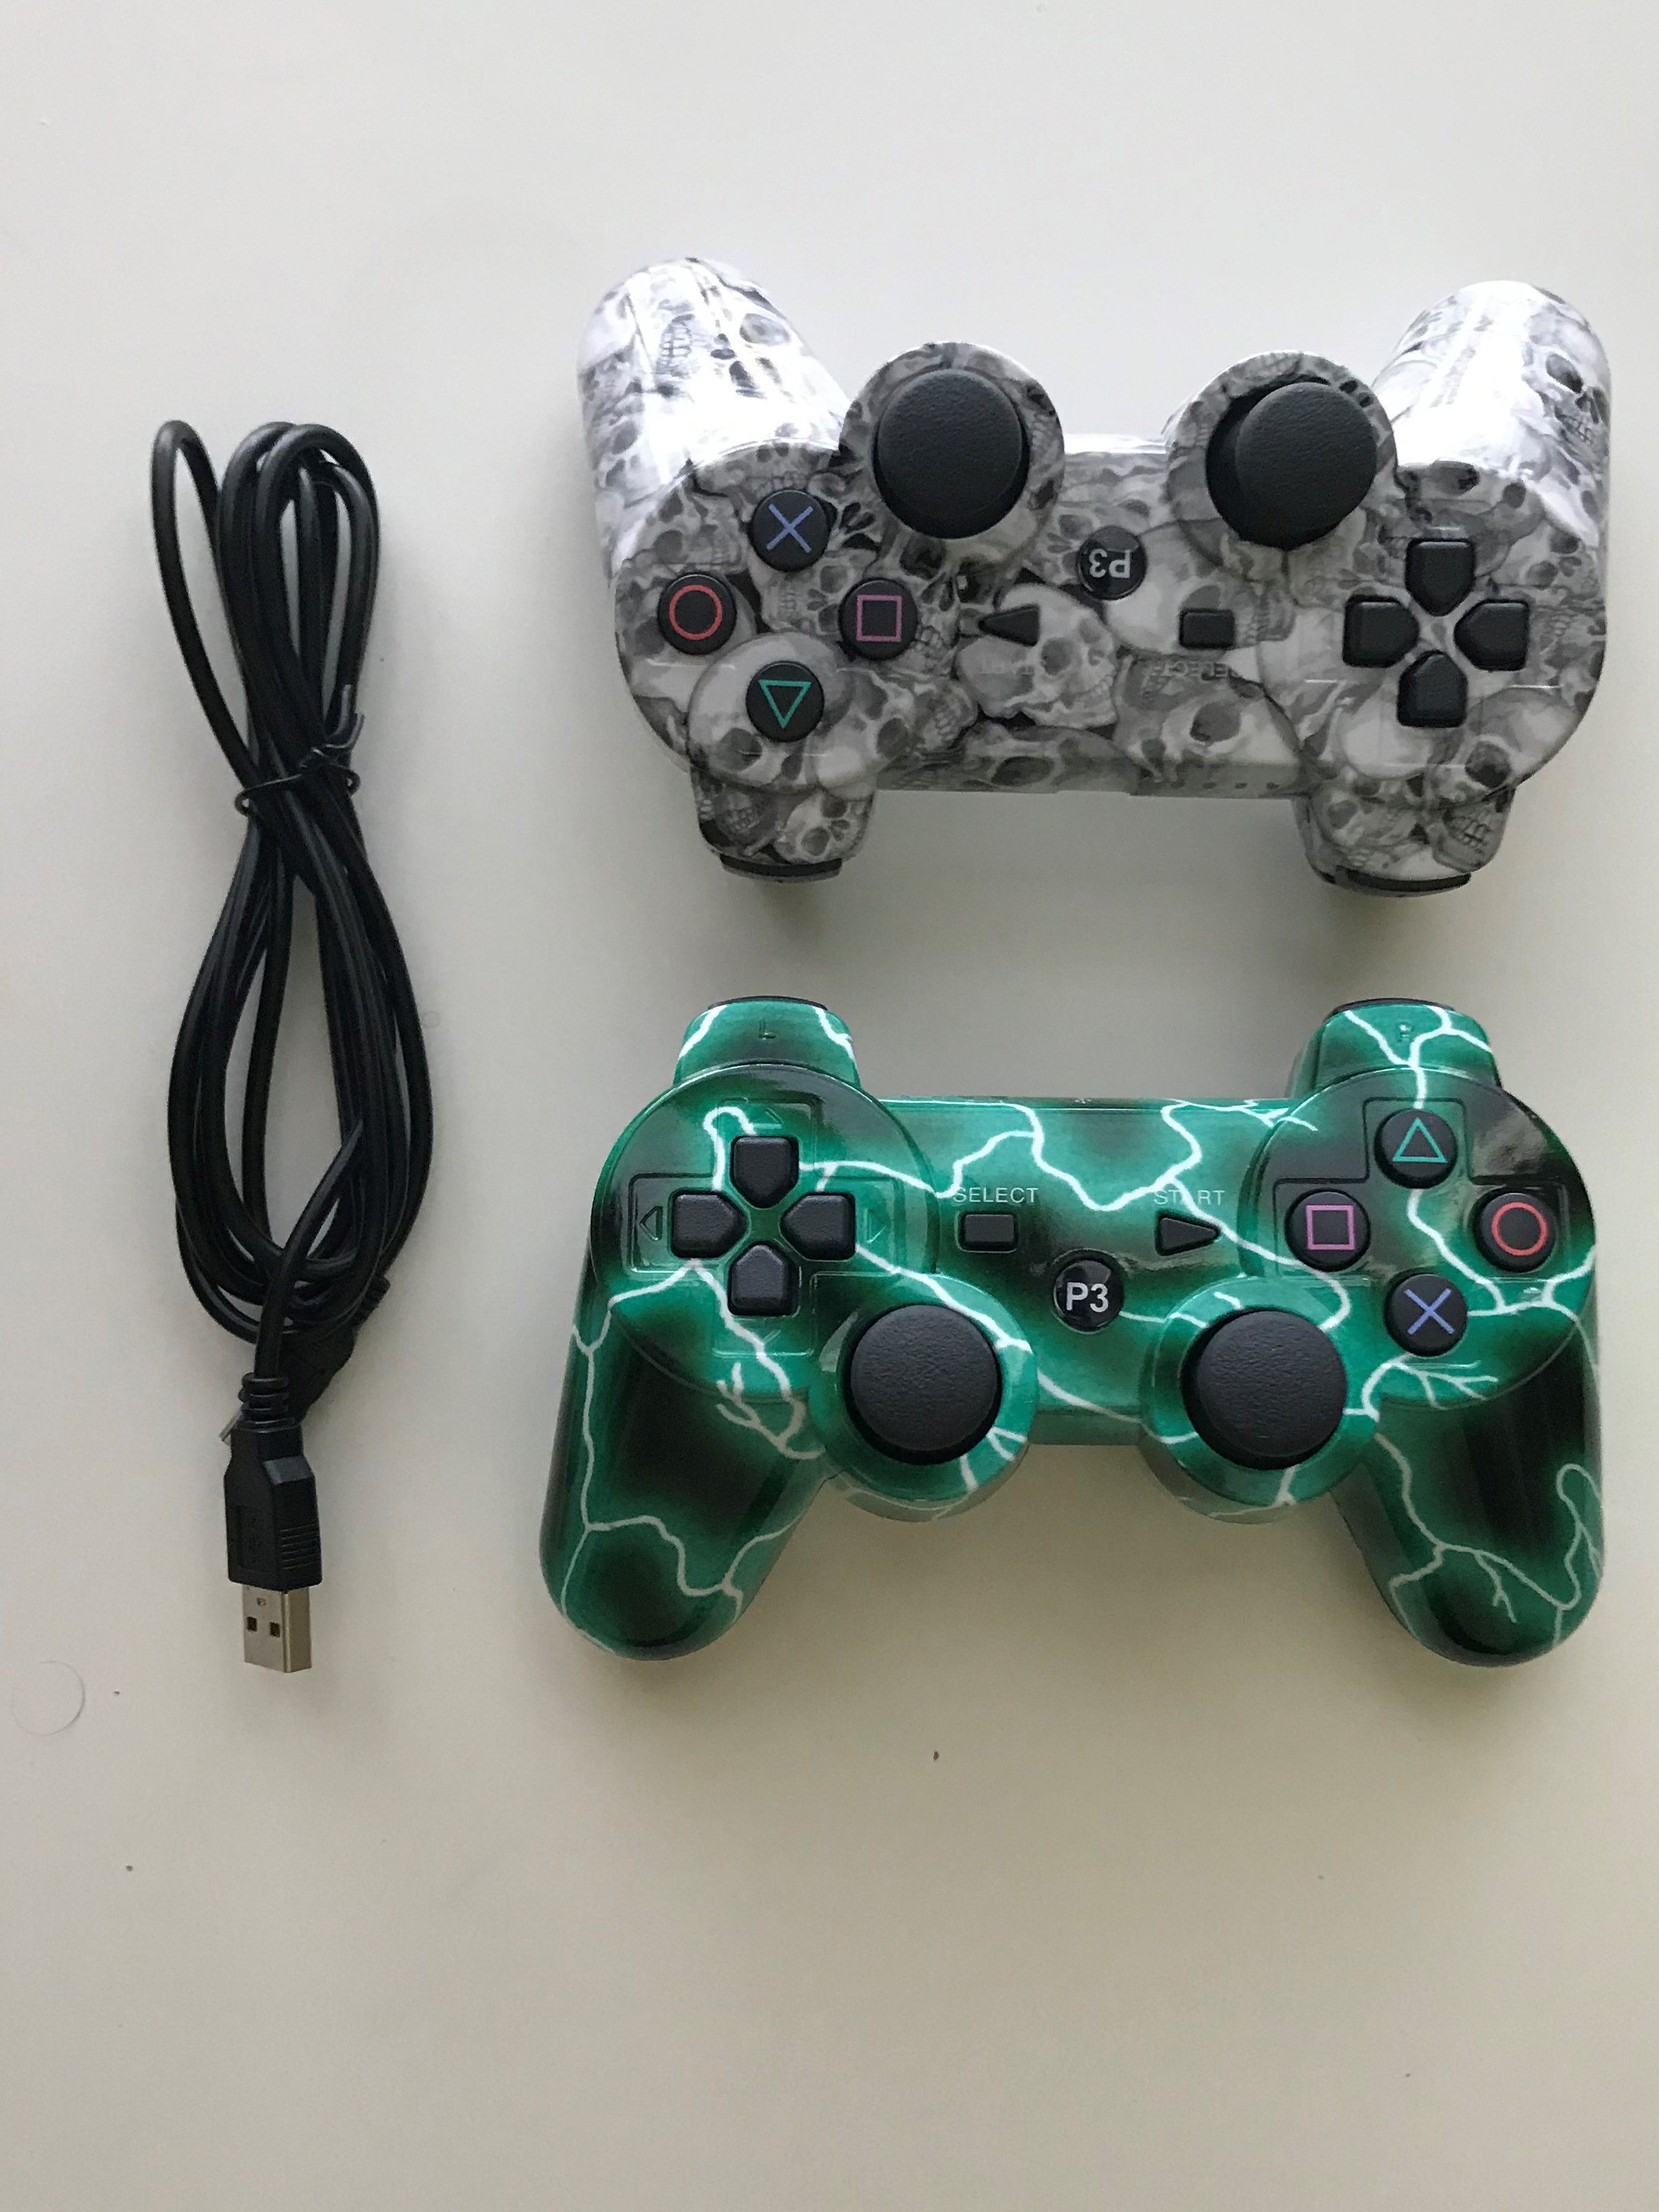 Ps3 wireless controller for playstation3